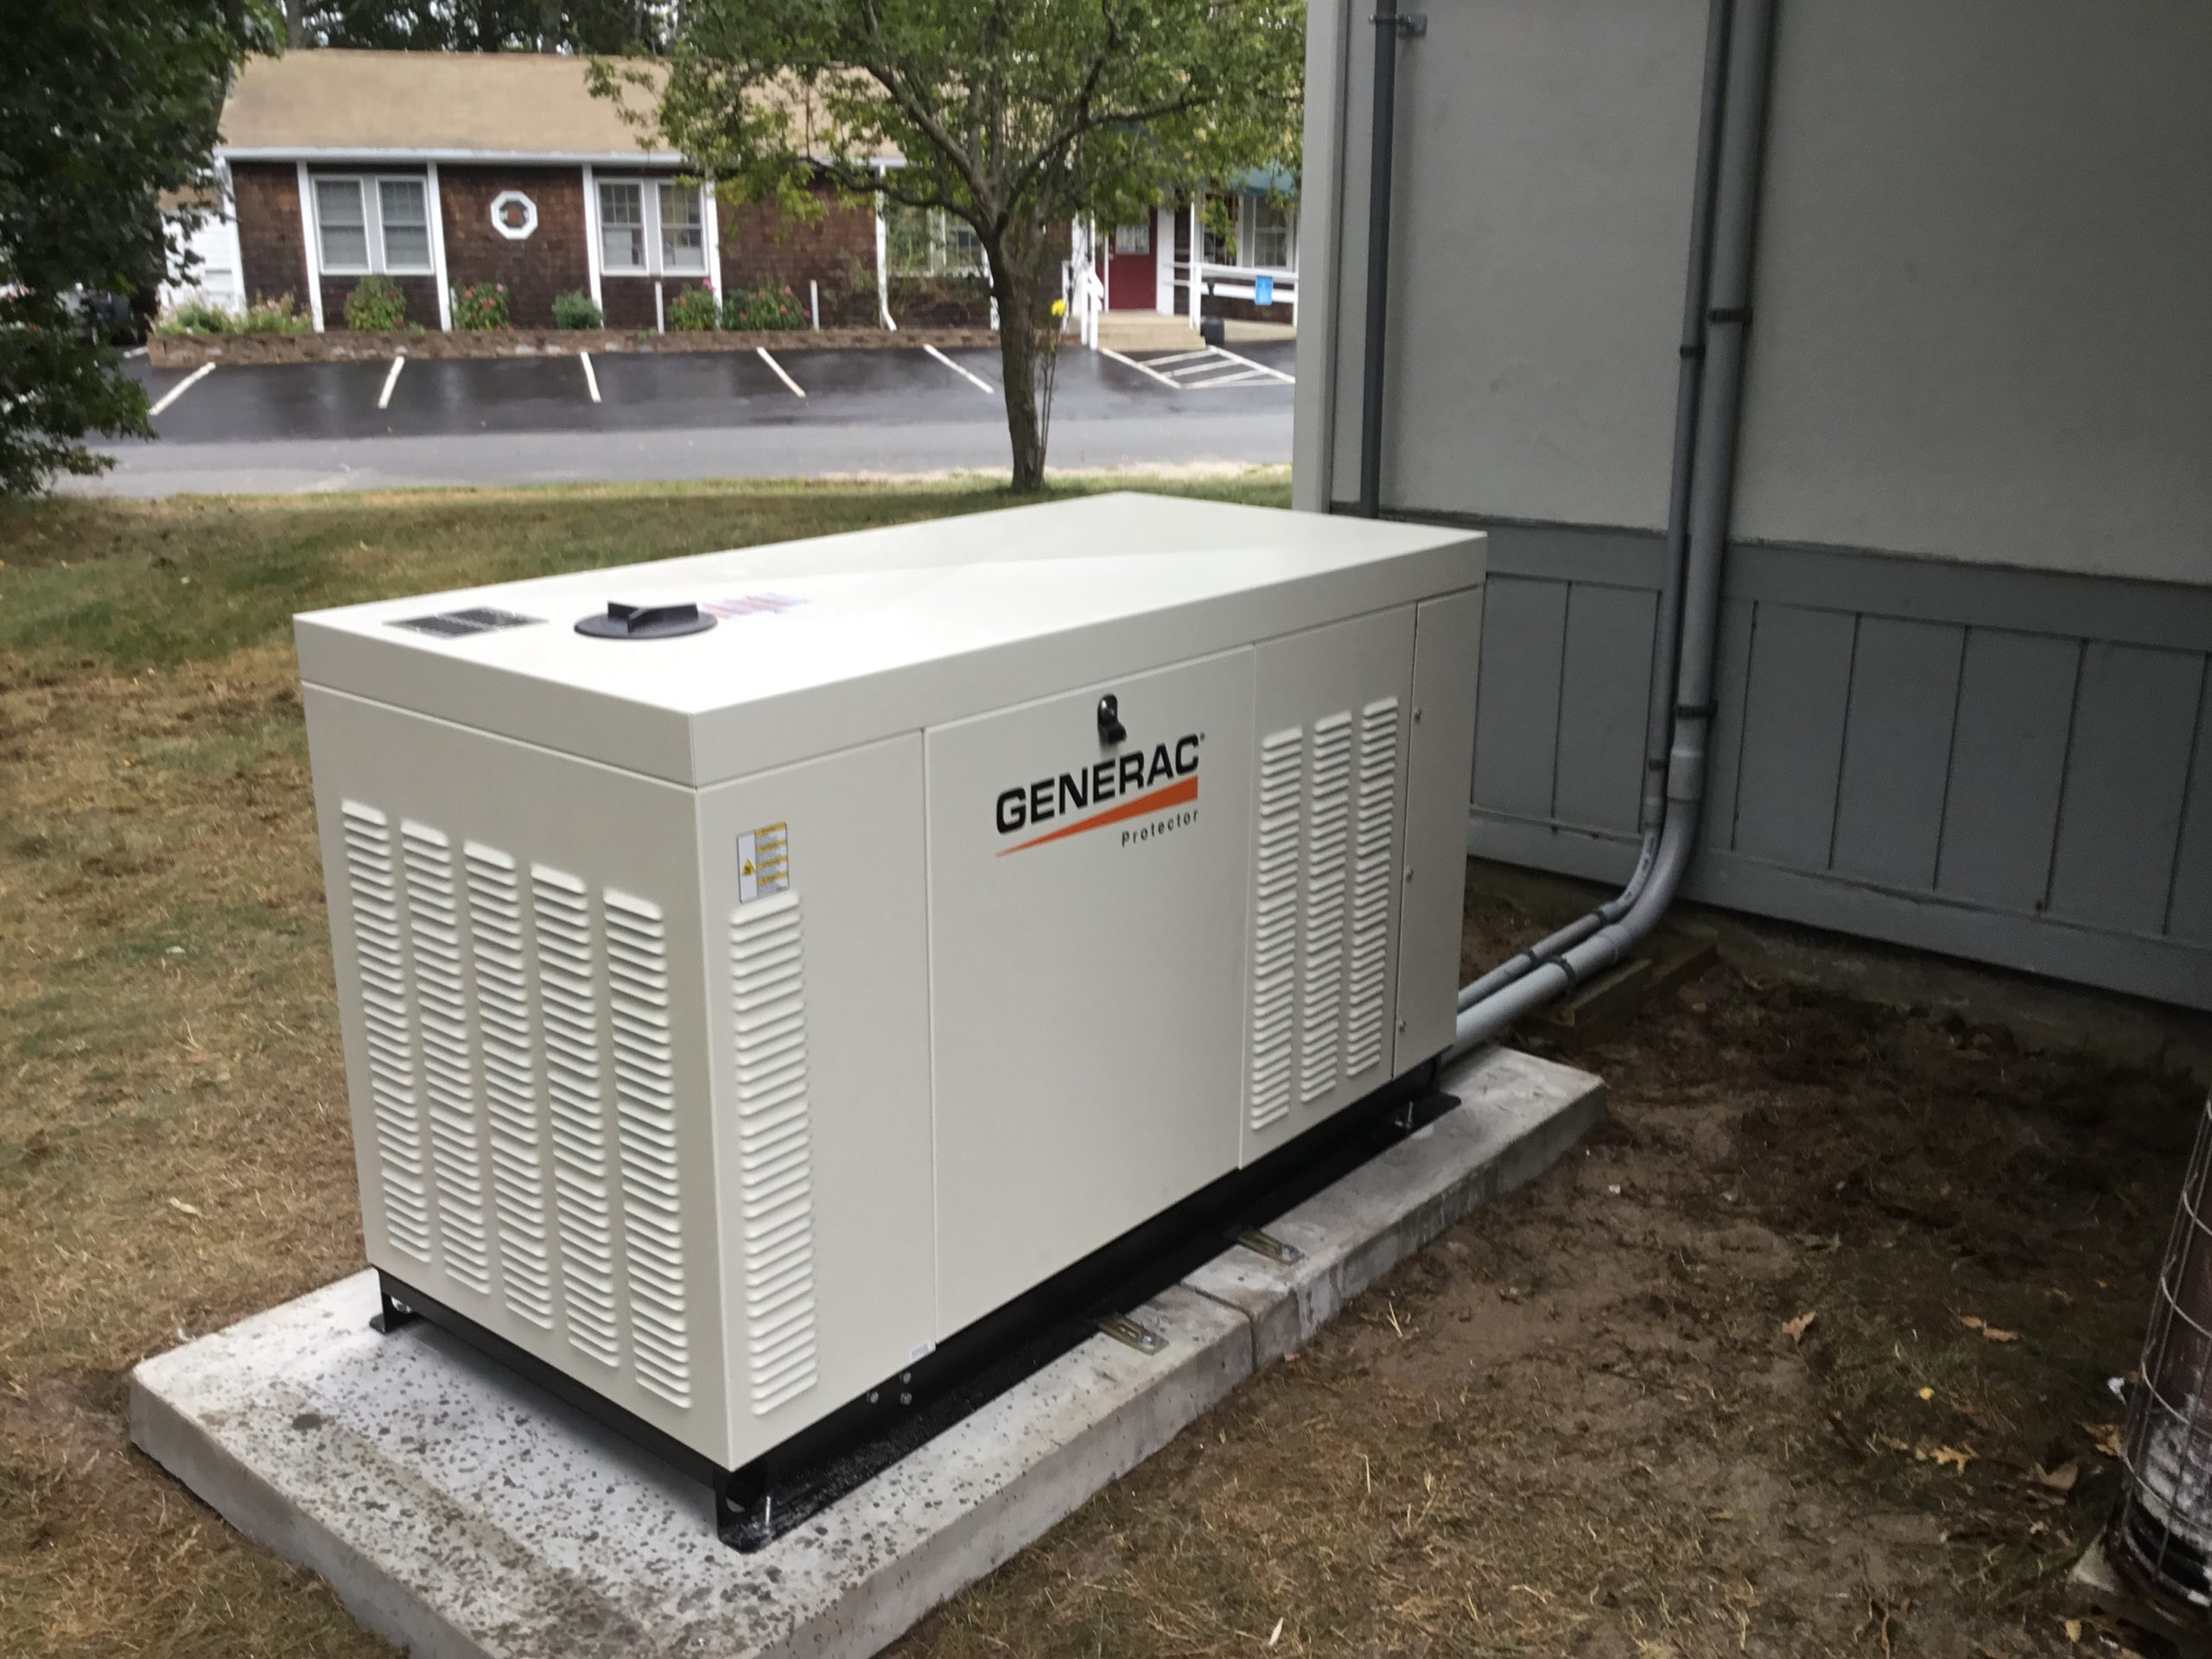 Generac Generator next to house